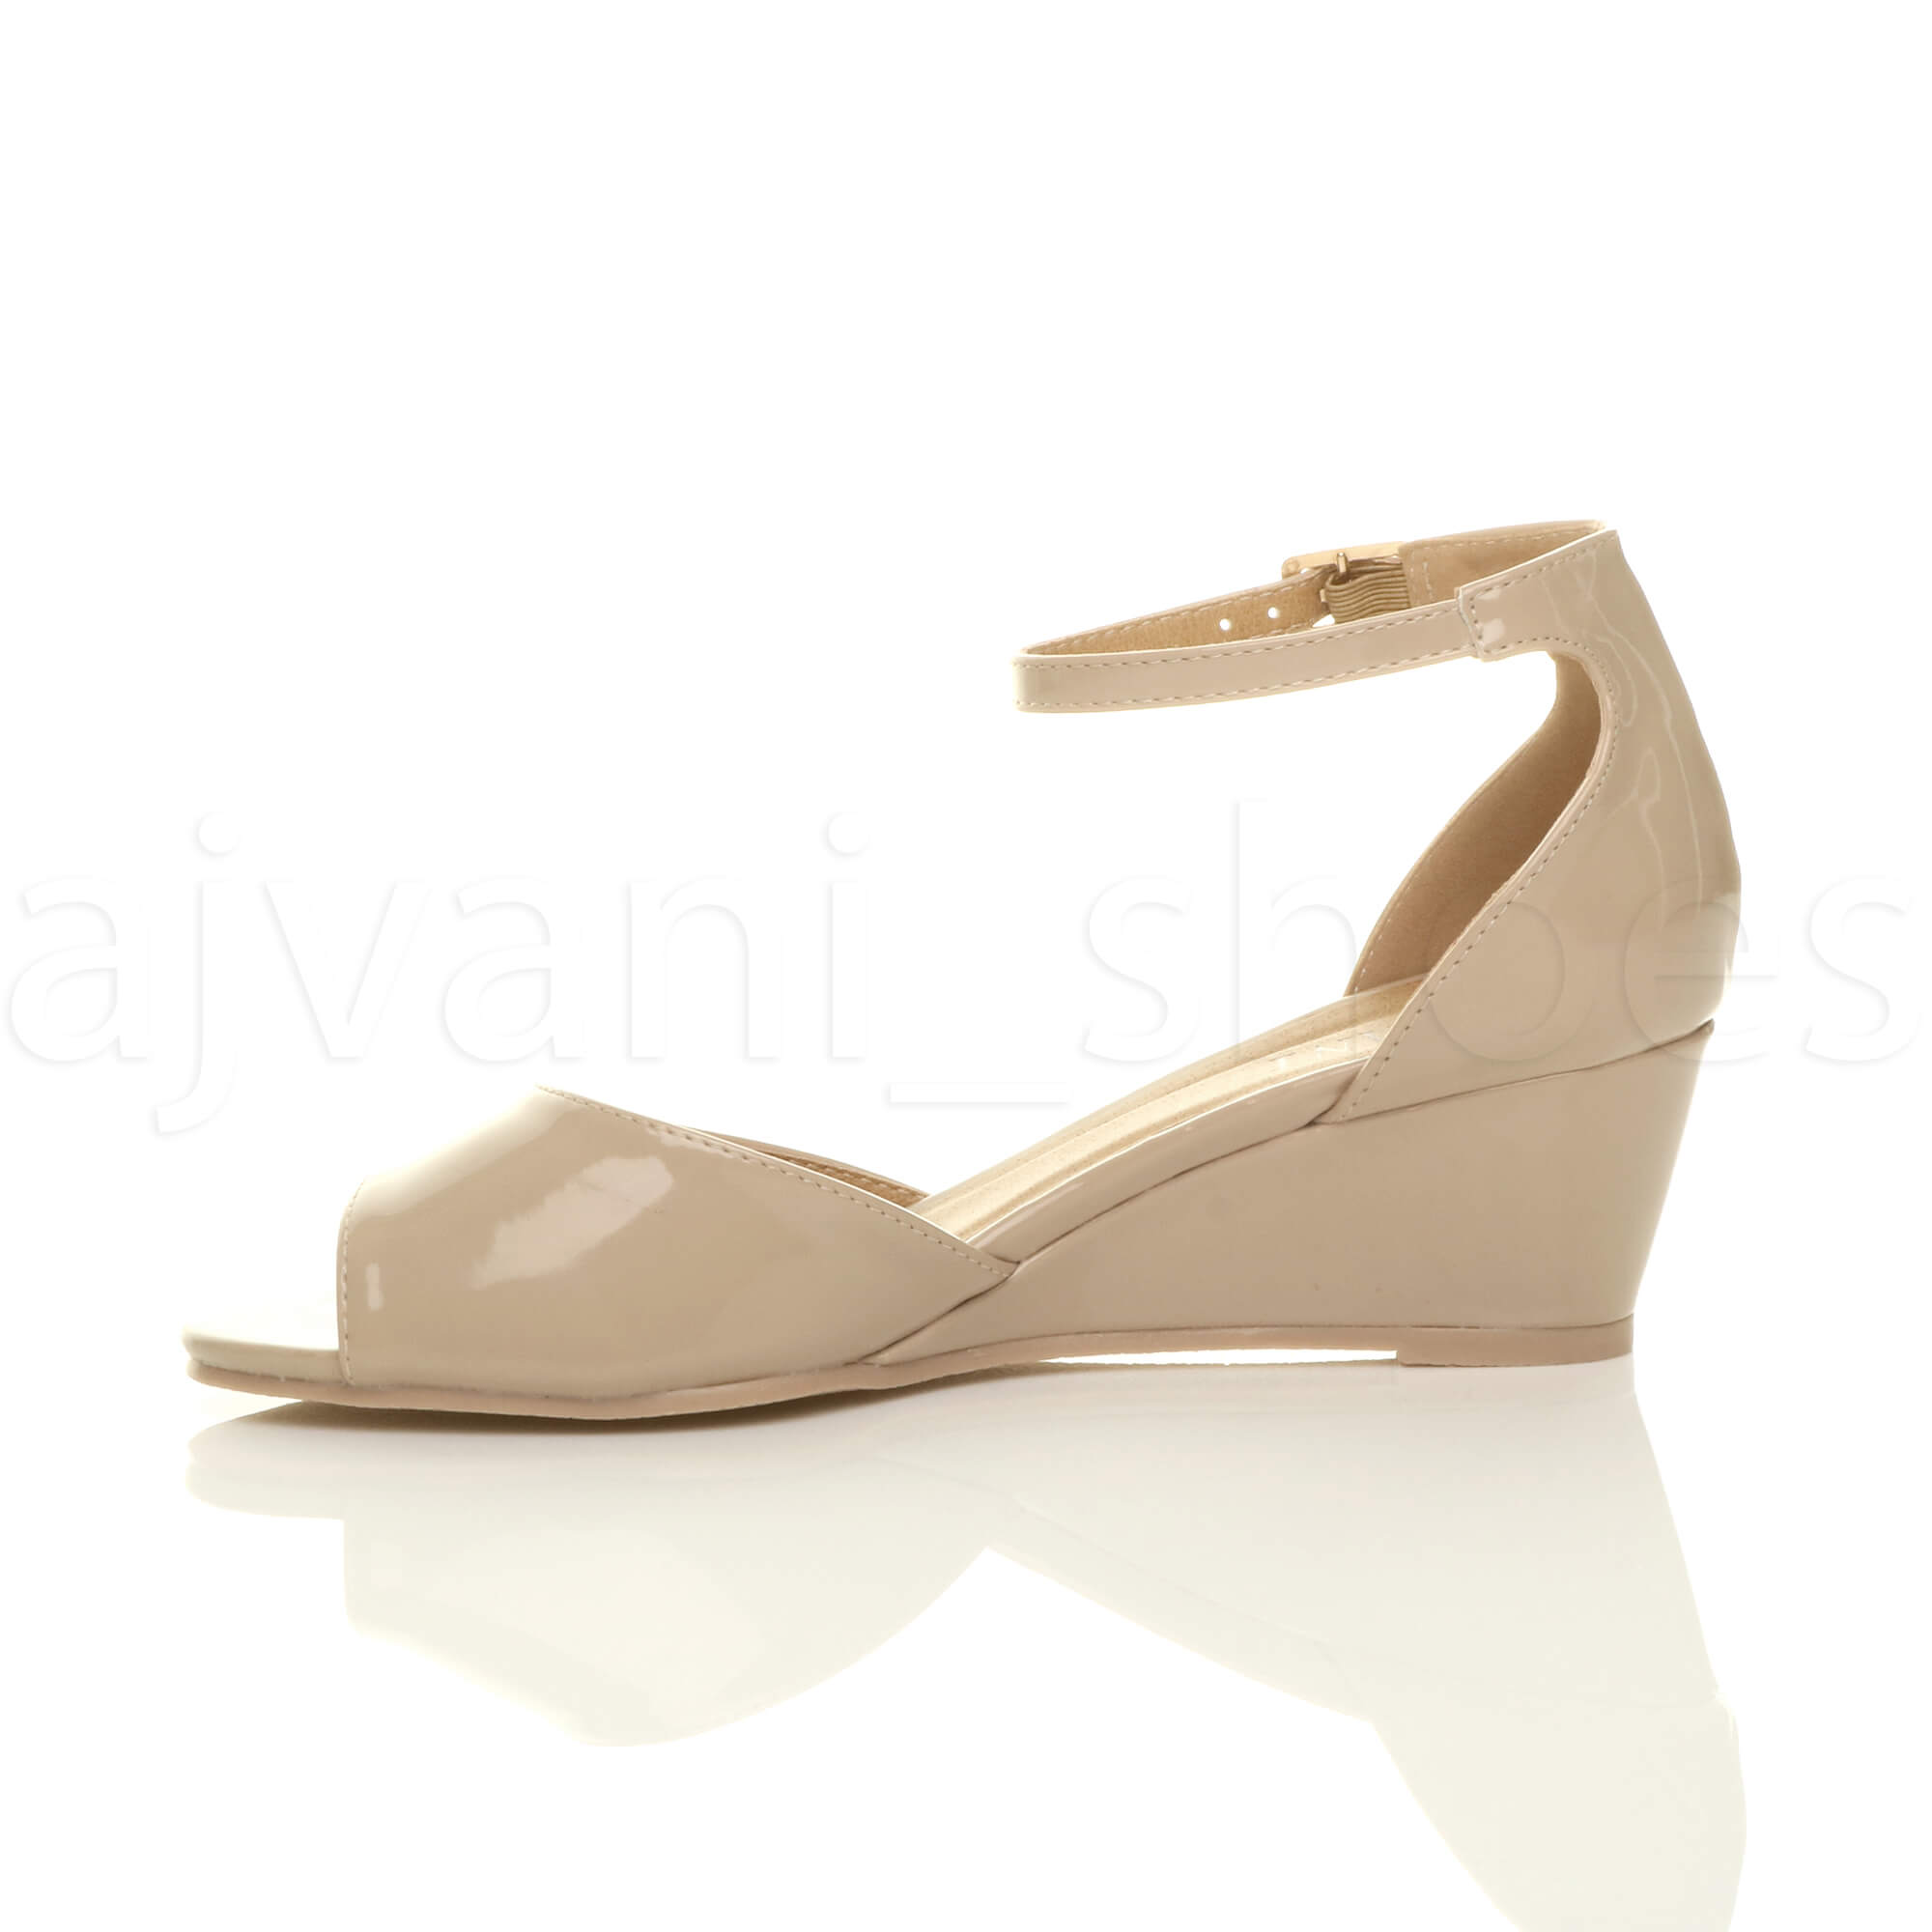 WOMENS-LADIES-LOW-MID-WEDGE-HEEL-ANKLE-STRAP-SMART-CASUAL-EVENING-SANDALS-SIZE thumbnail 100